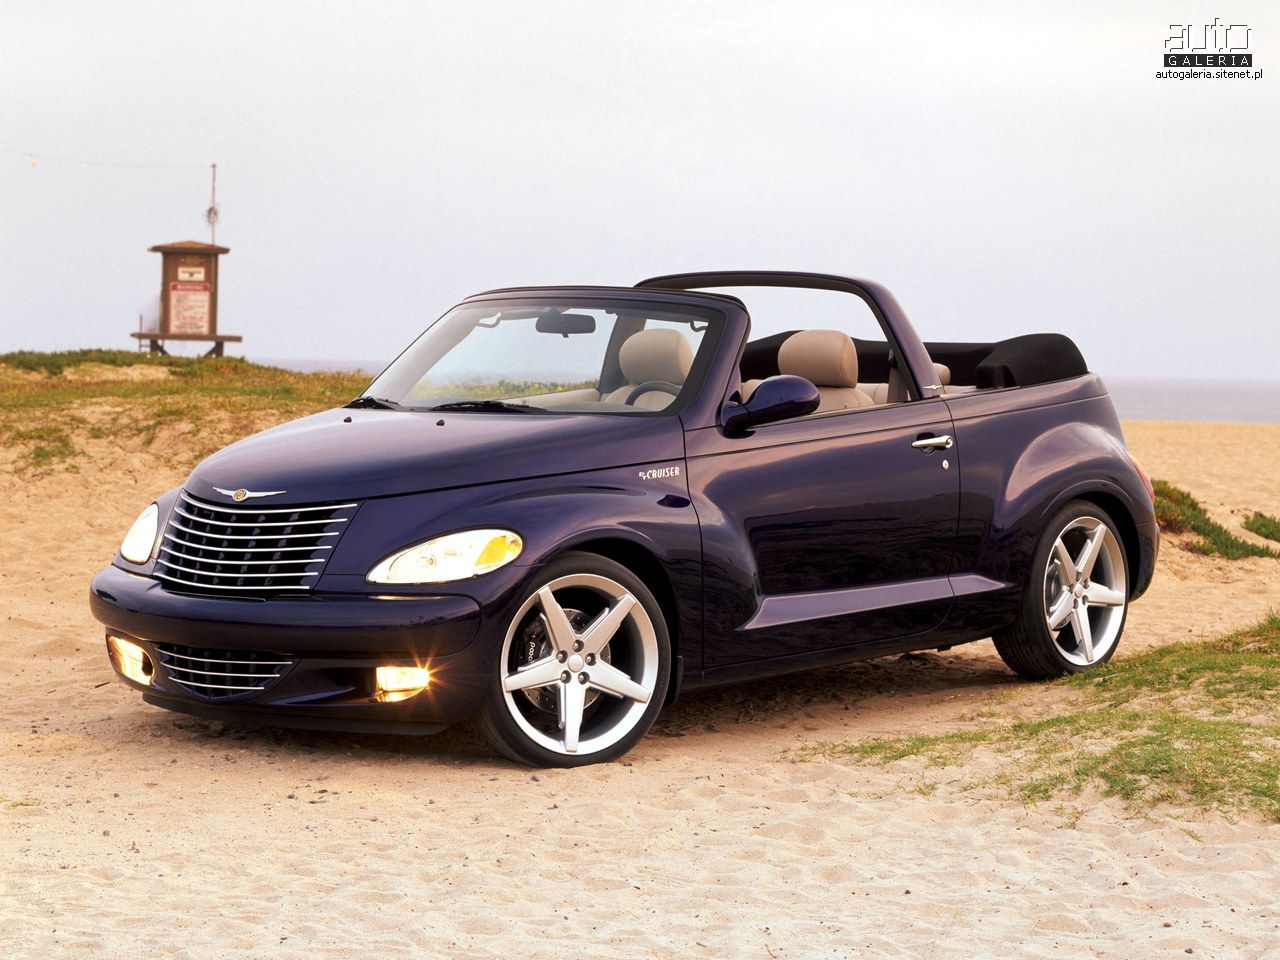 Chrysler pt cruiser still have mine love it for a day at the beach soo cute my future car